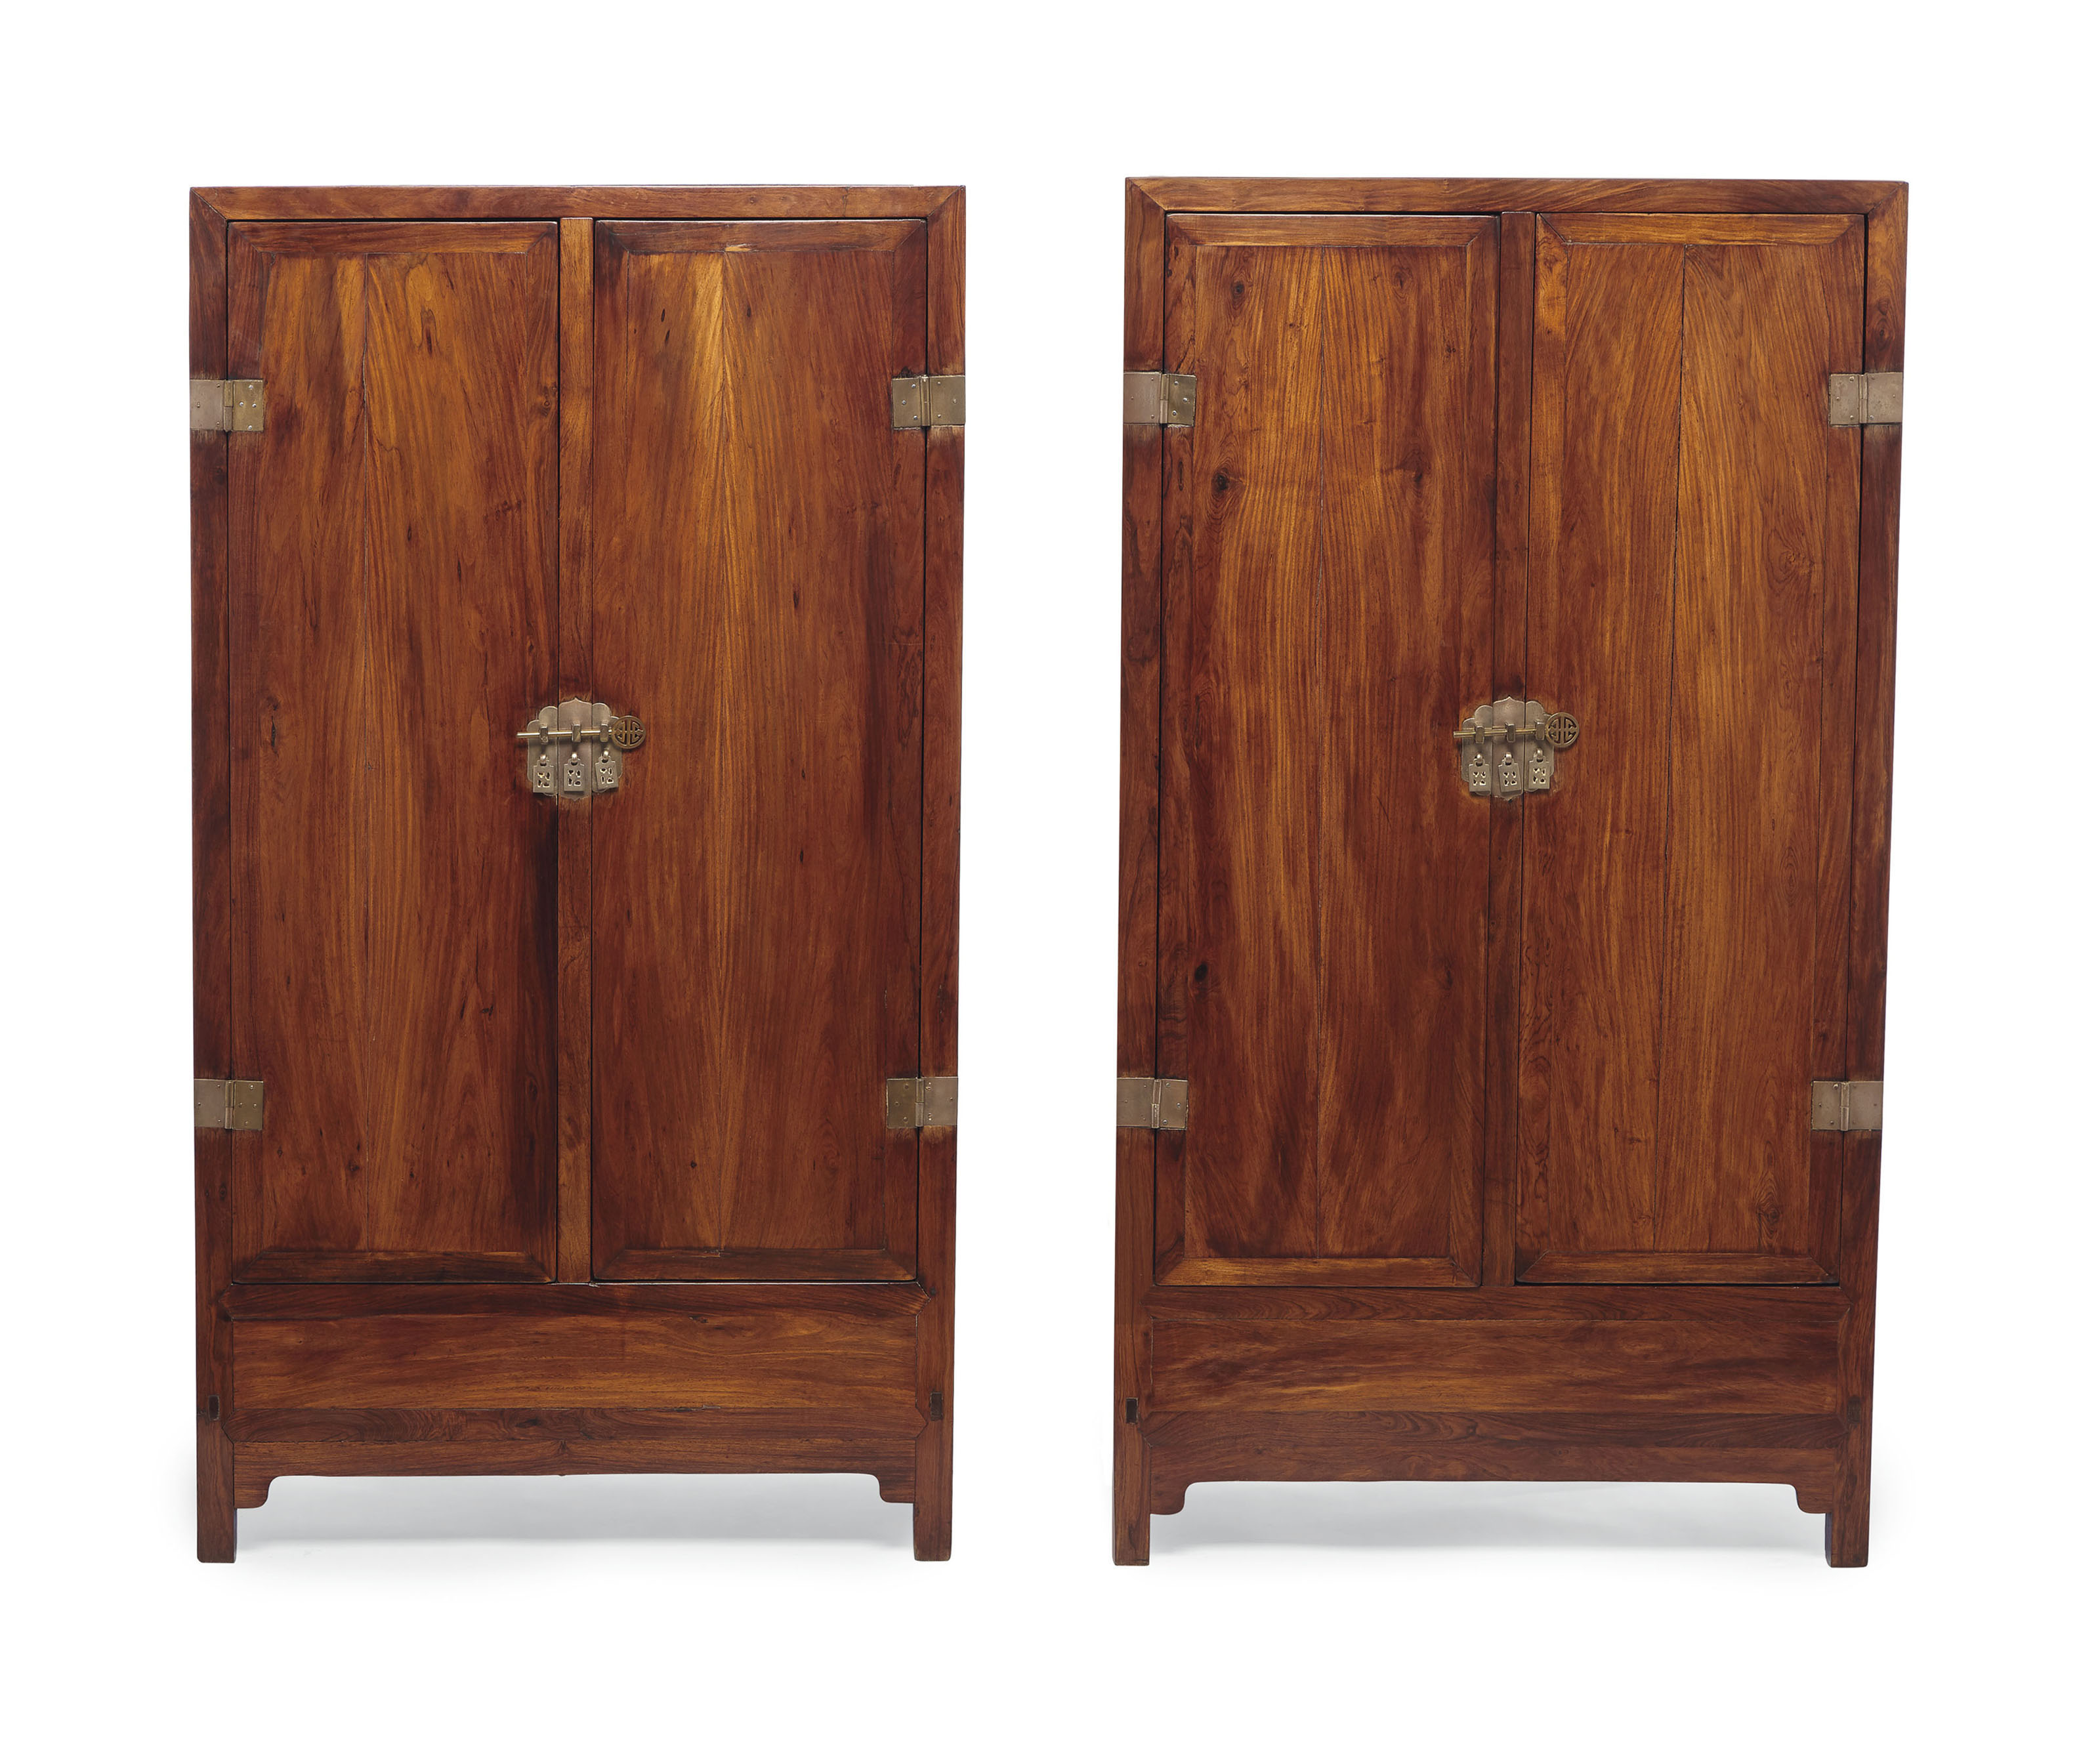 AN UNUSUAL PAIR OF HUANGHUALI SQUARE-CORNER CABINETS